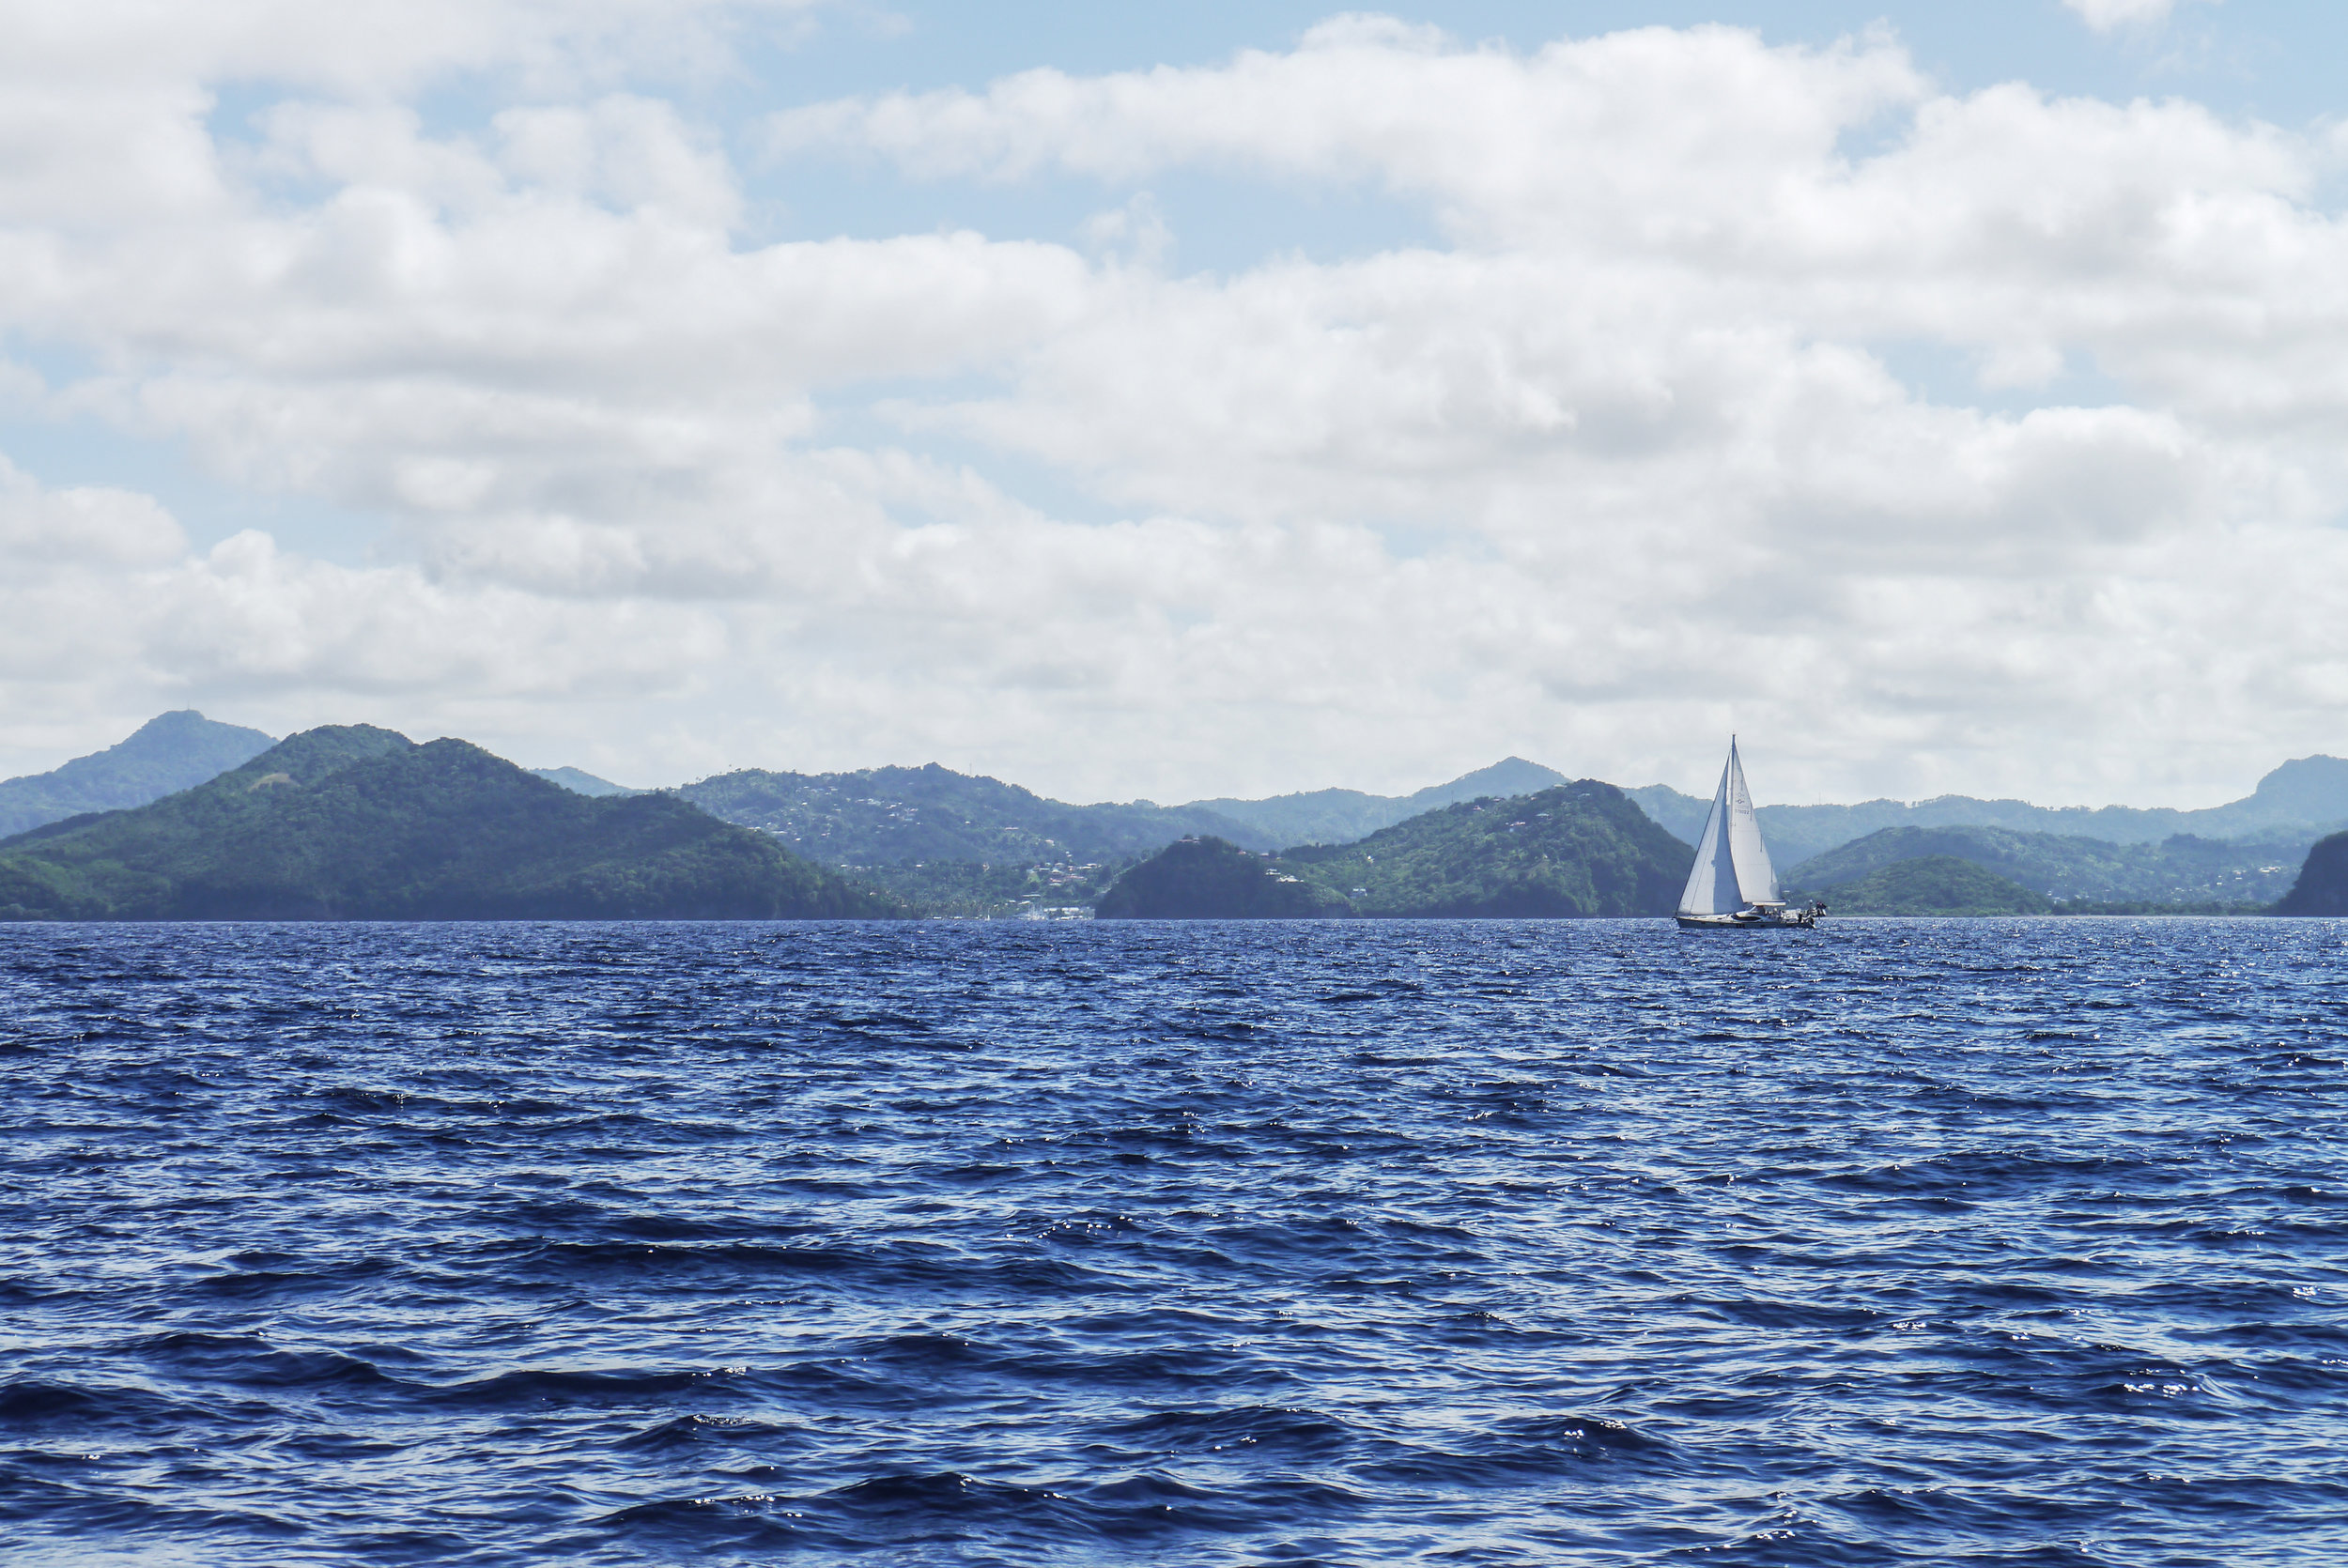 Canva - White Boat With Sail on Body of Water.jpg